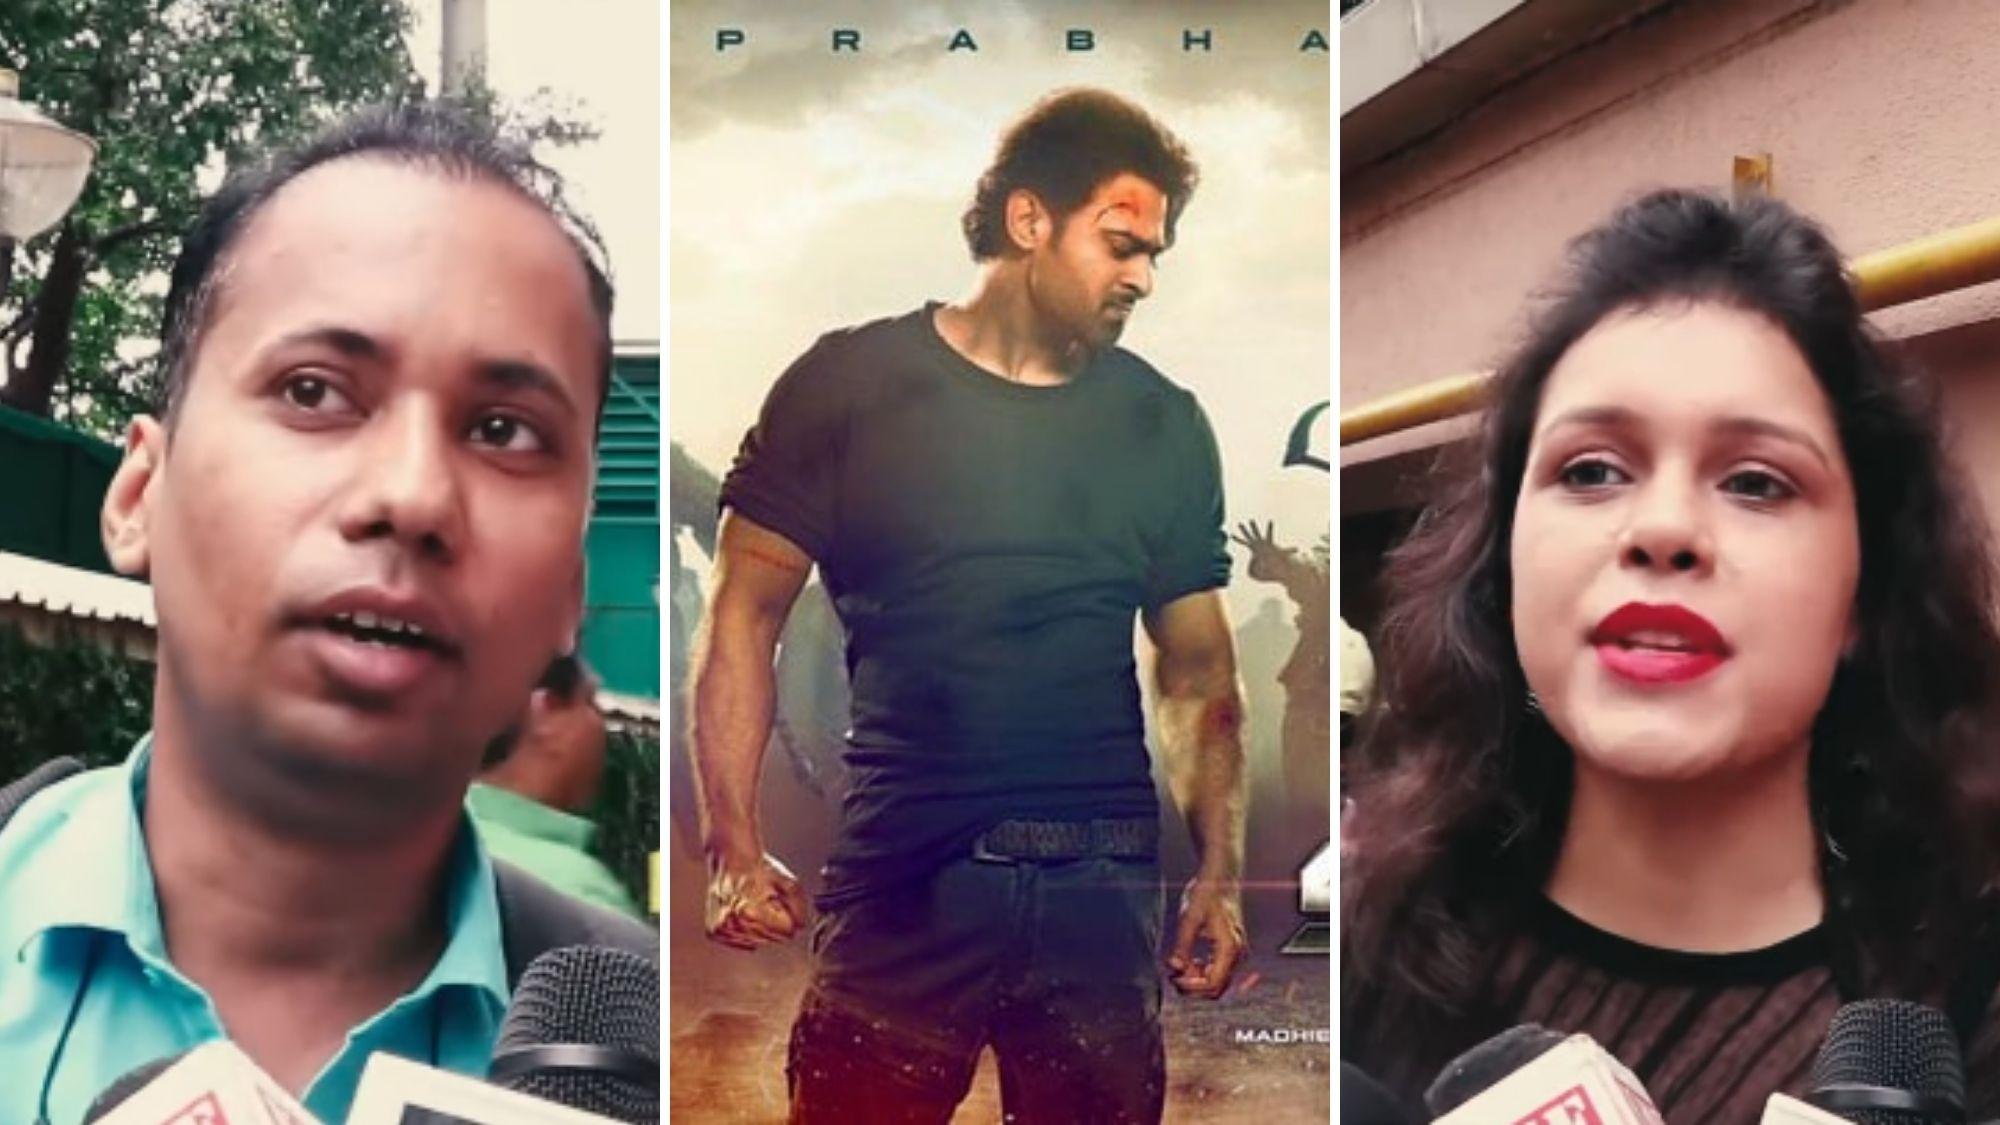 Audience Lauds Action Sequences, Prabhas' Acting in 'Saaho'